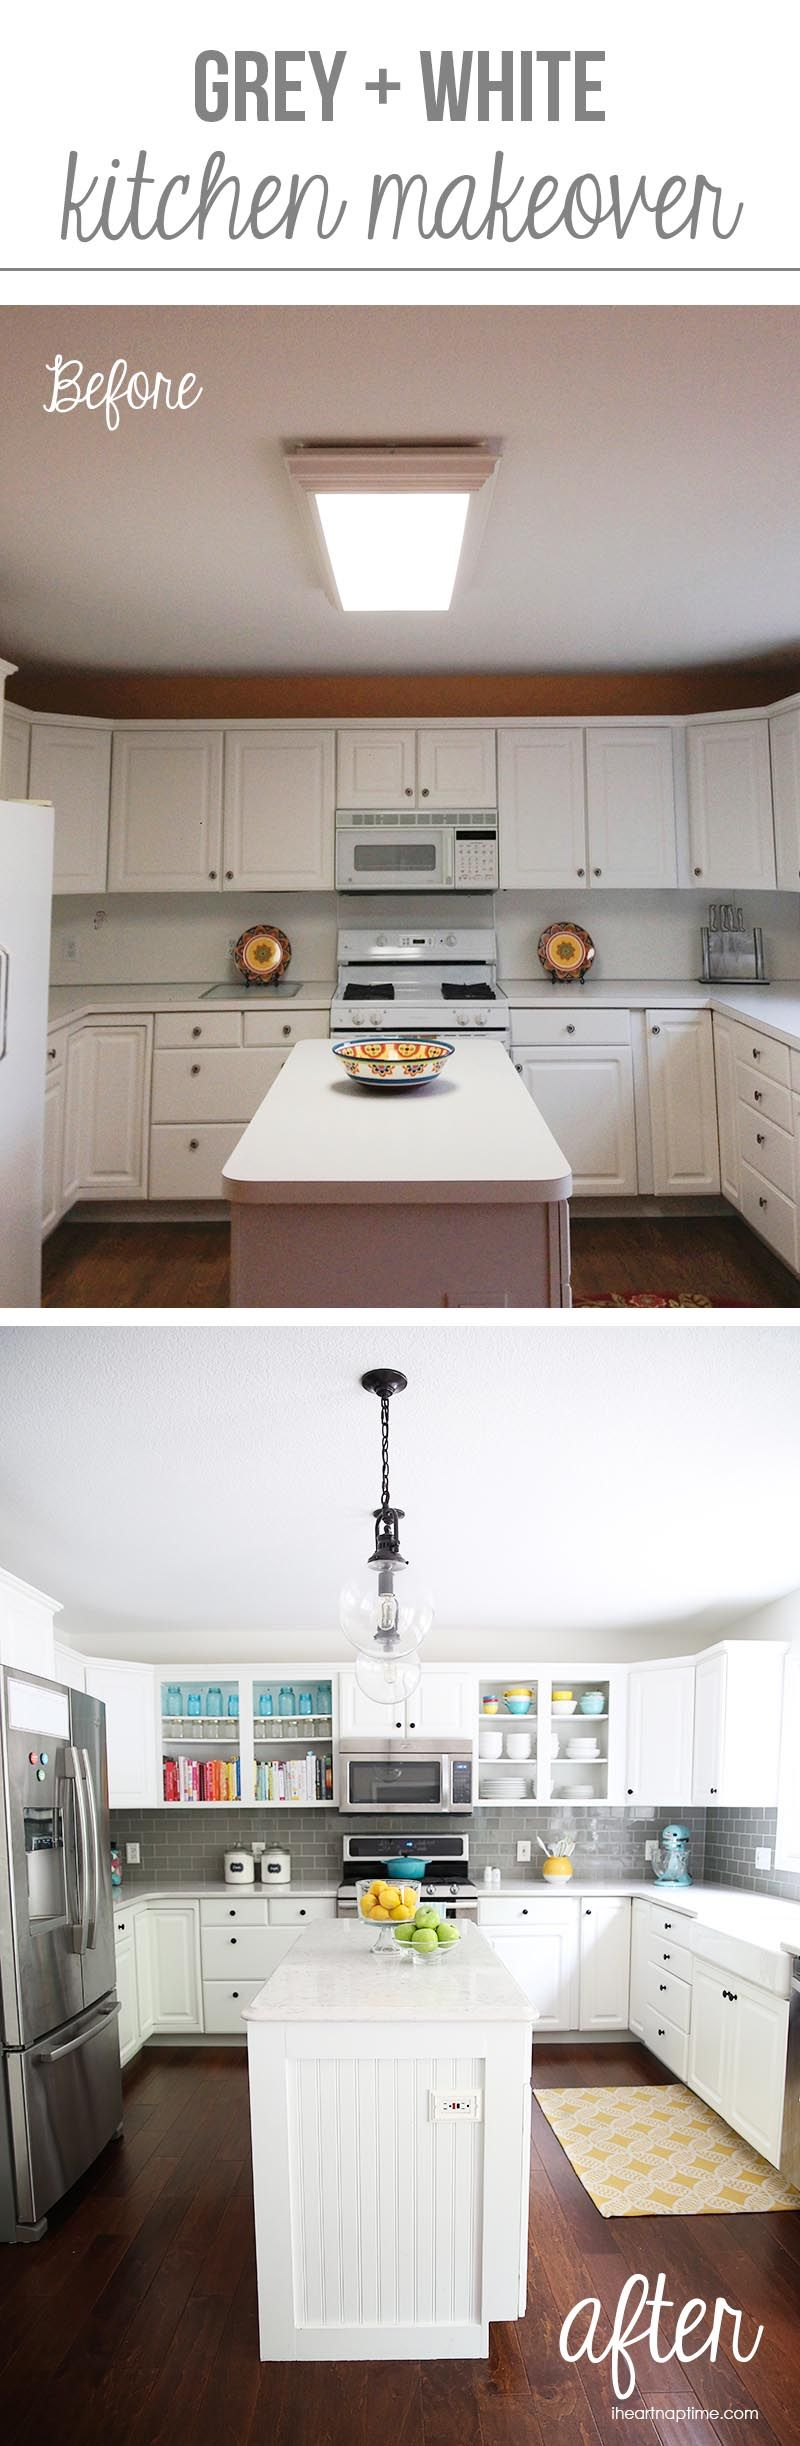 White And Grey Kitchen Makeover On Iheartnaptime.com  Love The Pops Of Color !